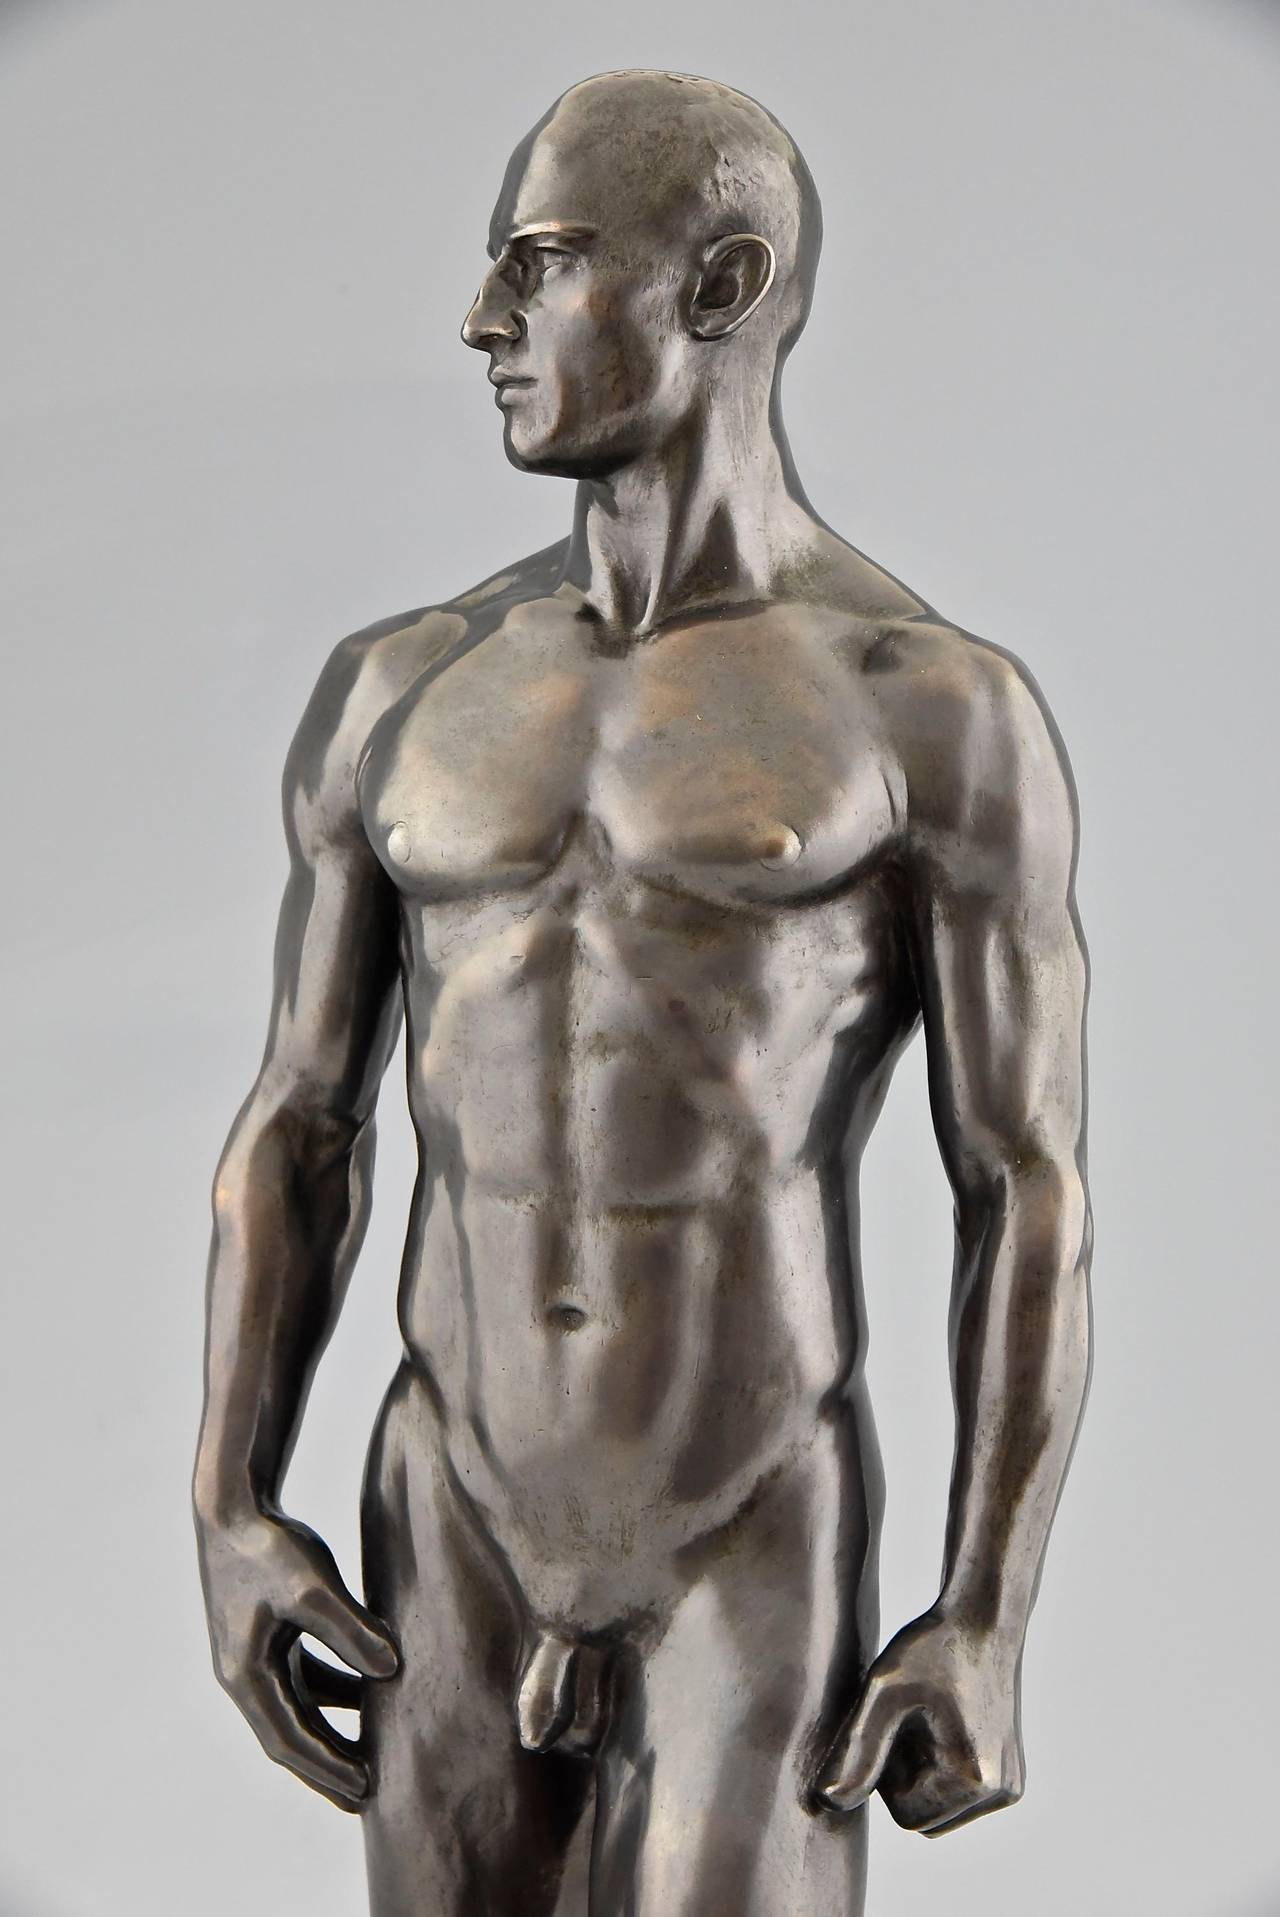 Sculptures of male nudes